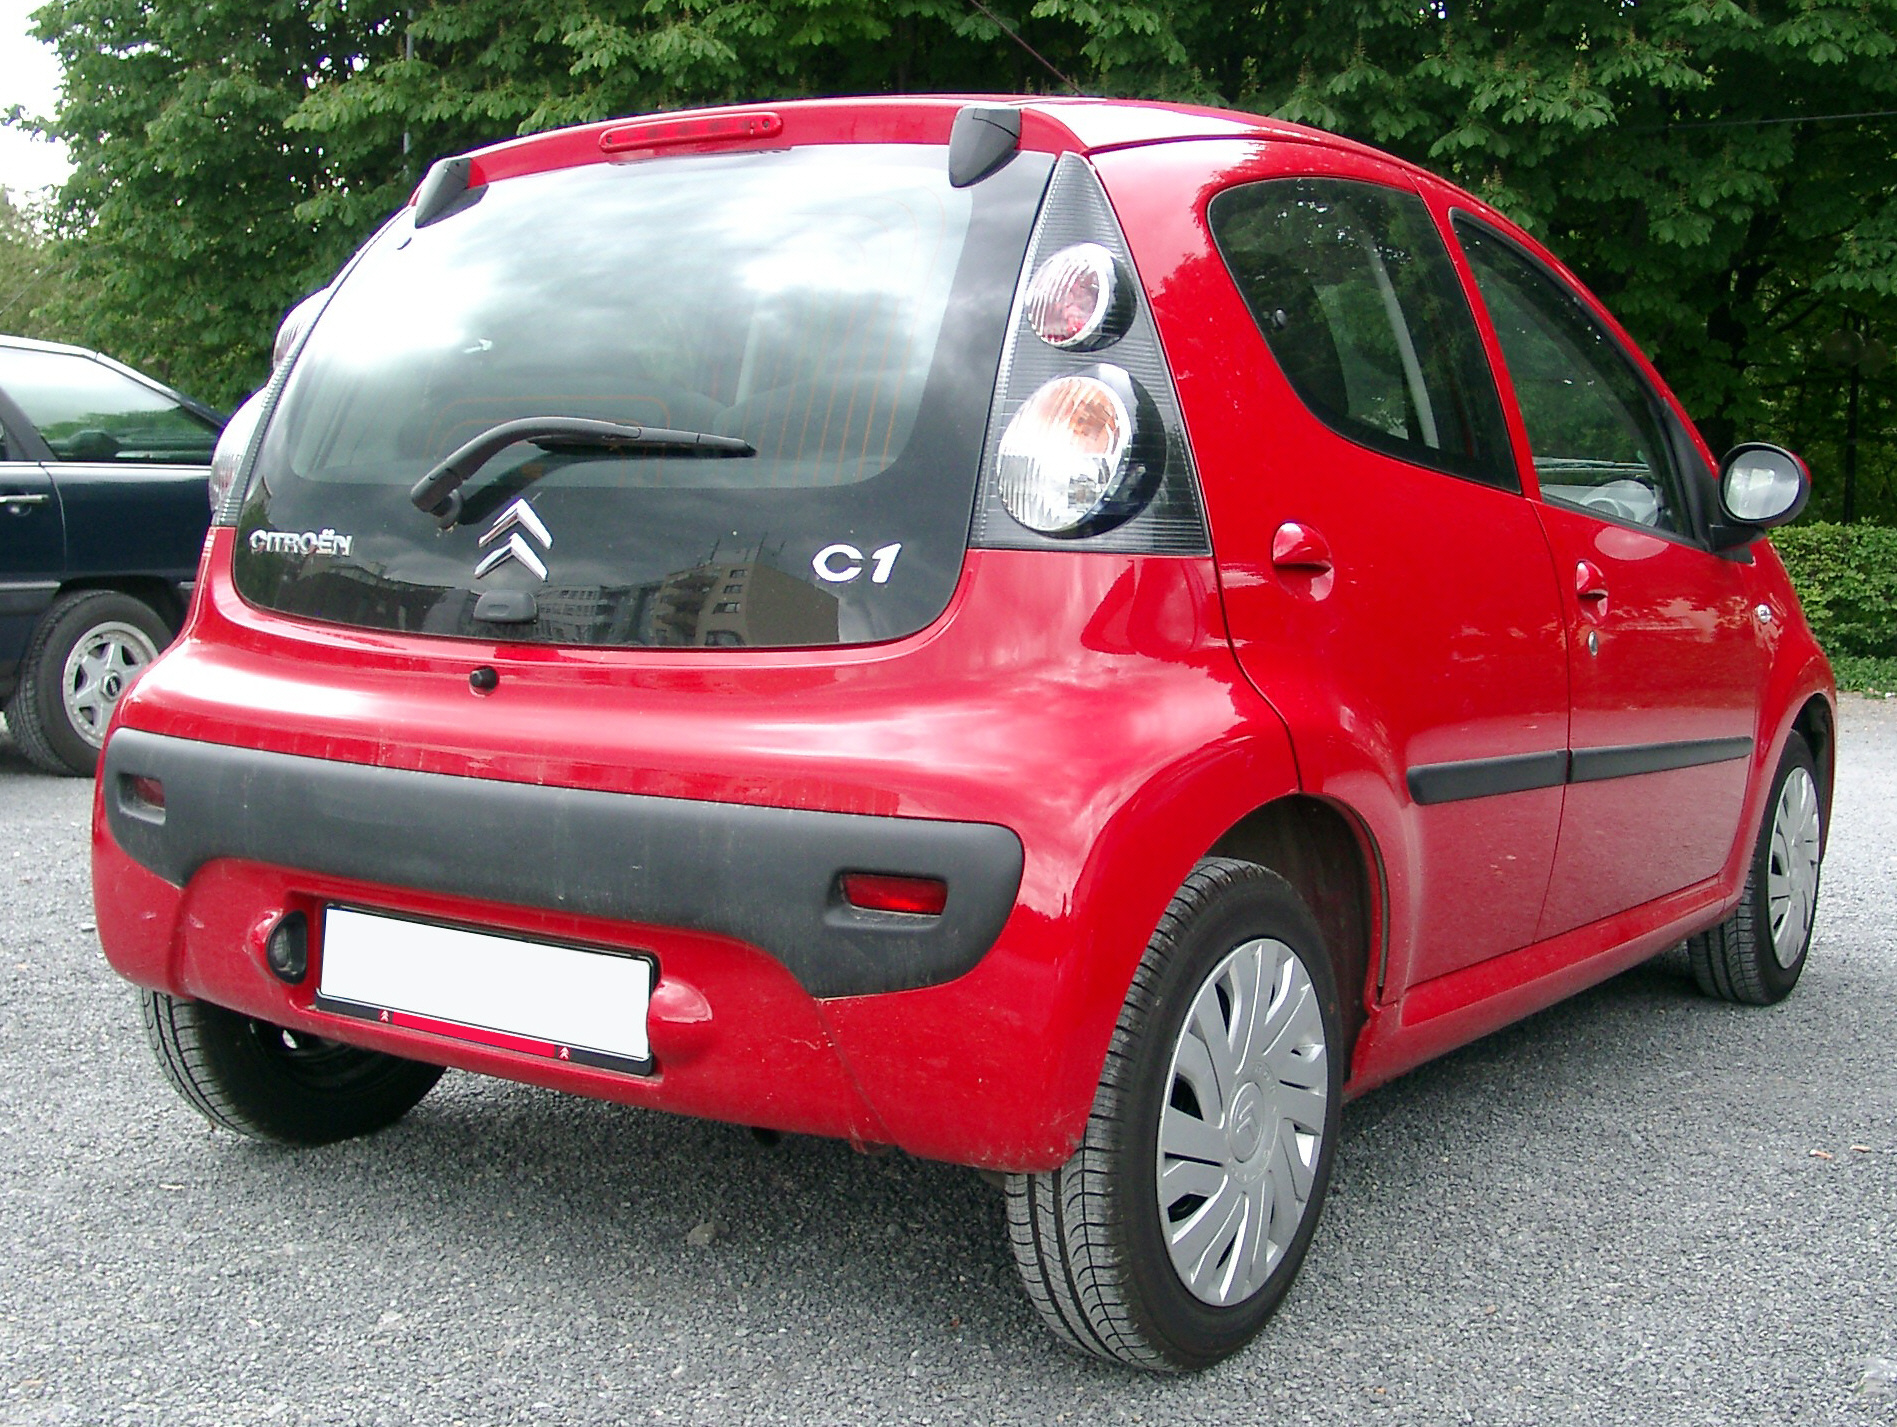 Description Citroen C1 rear 20070511.jpg